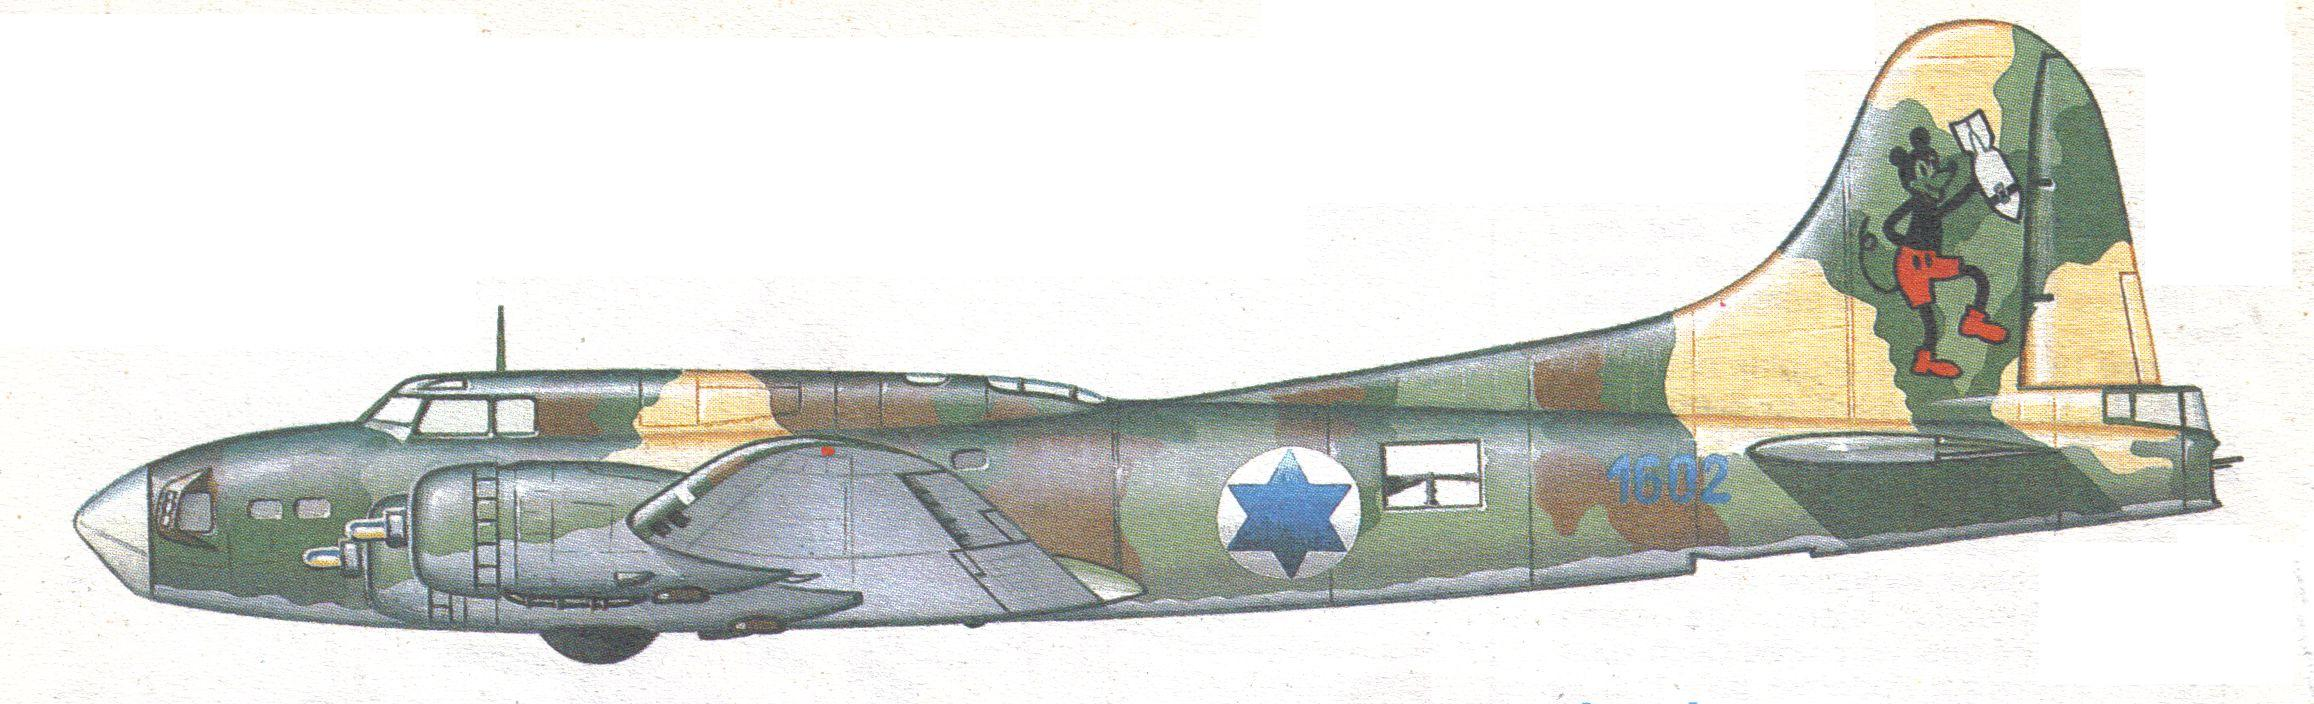 Boeing B-17G Flying Fortress_izrael01.jpg